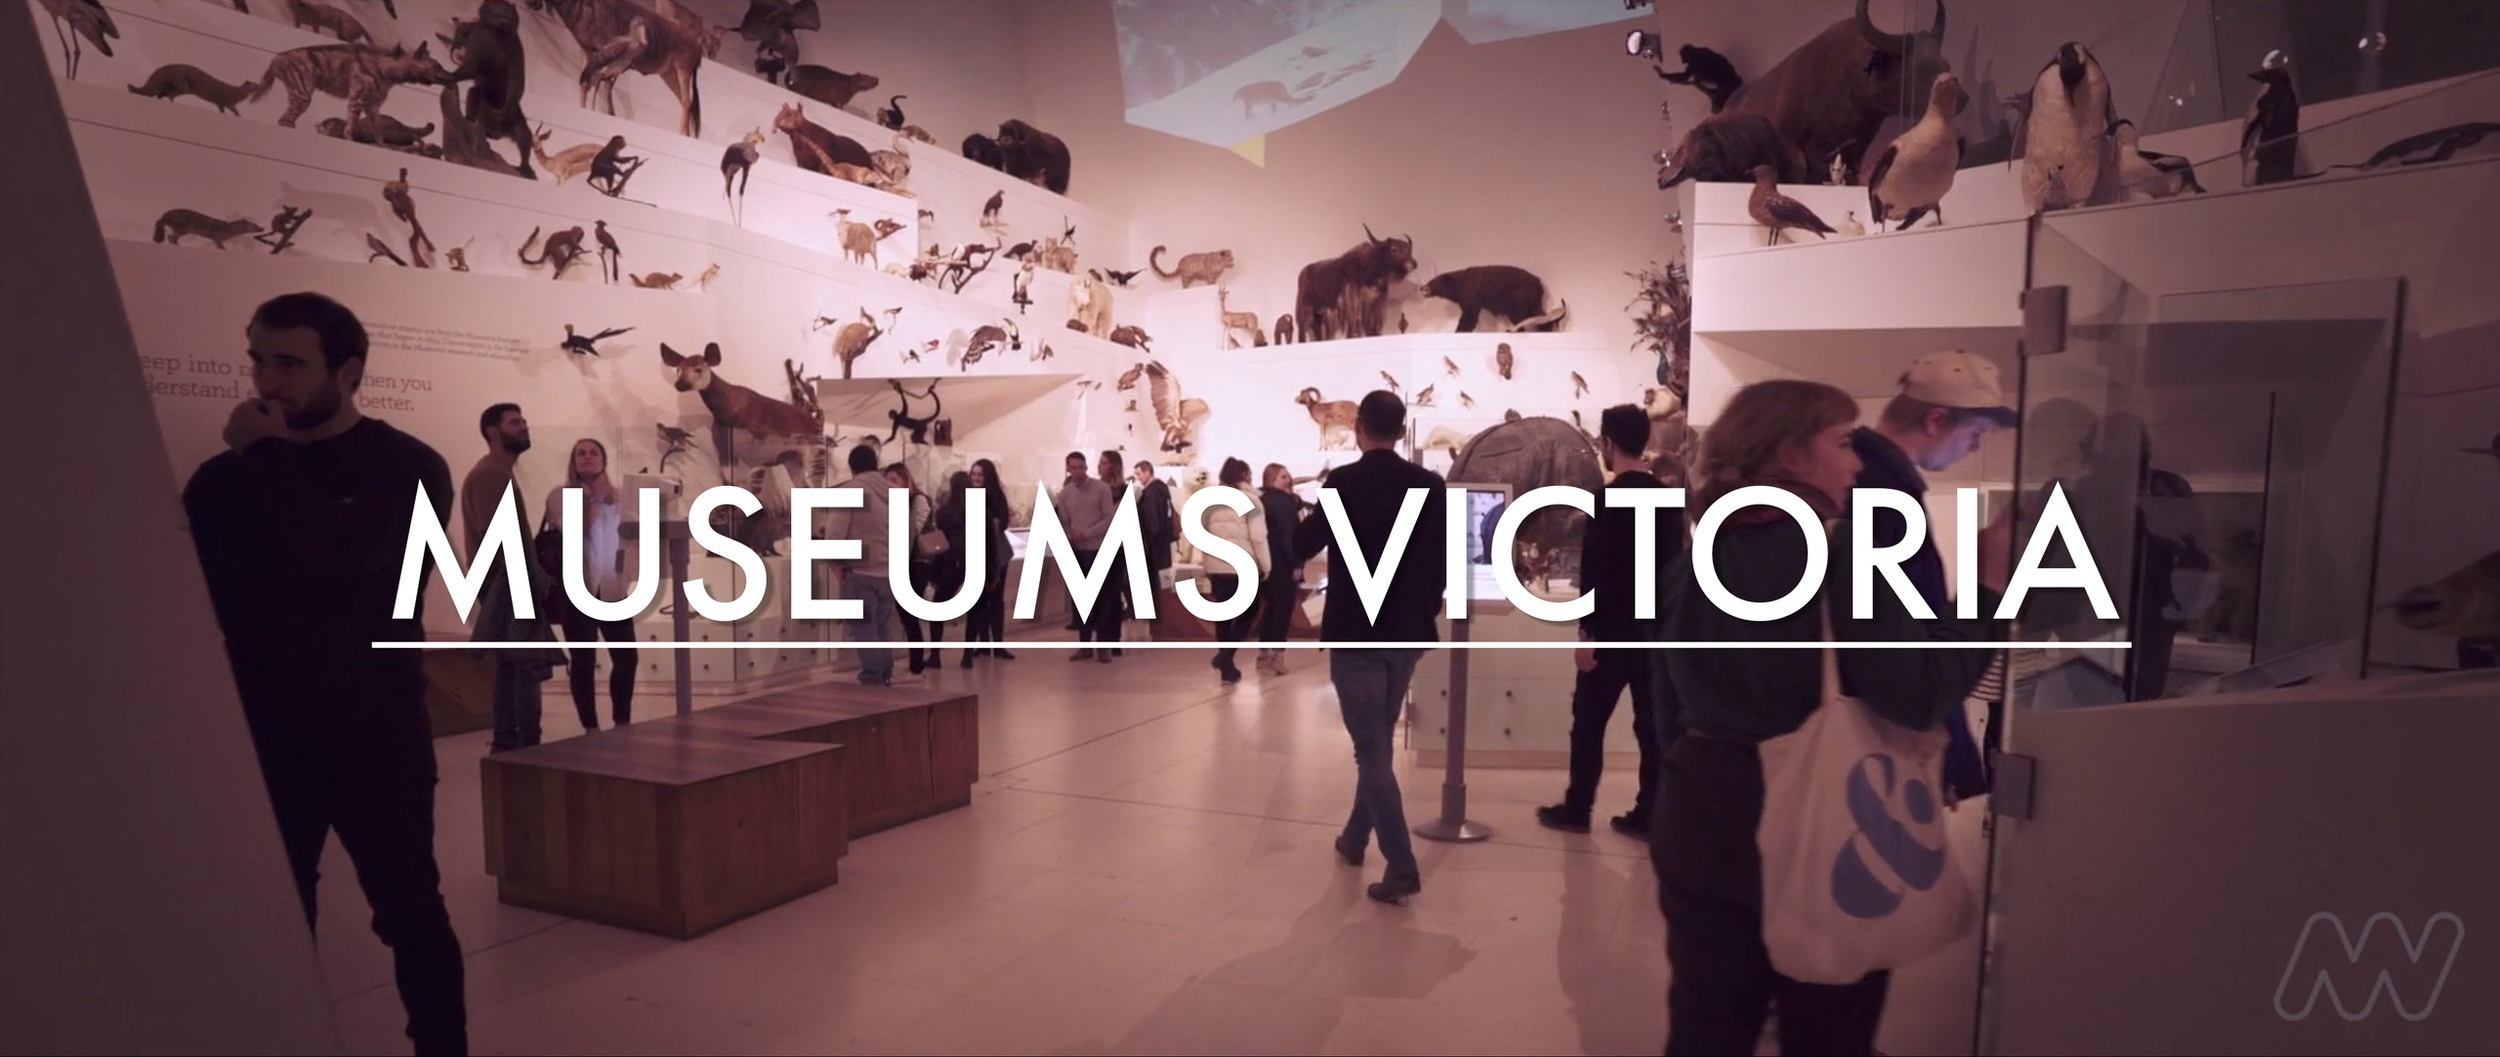 feature-museums-victoria.jpg